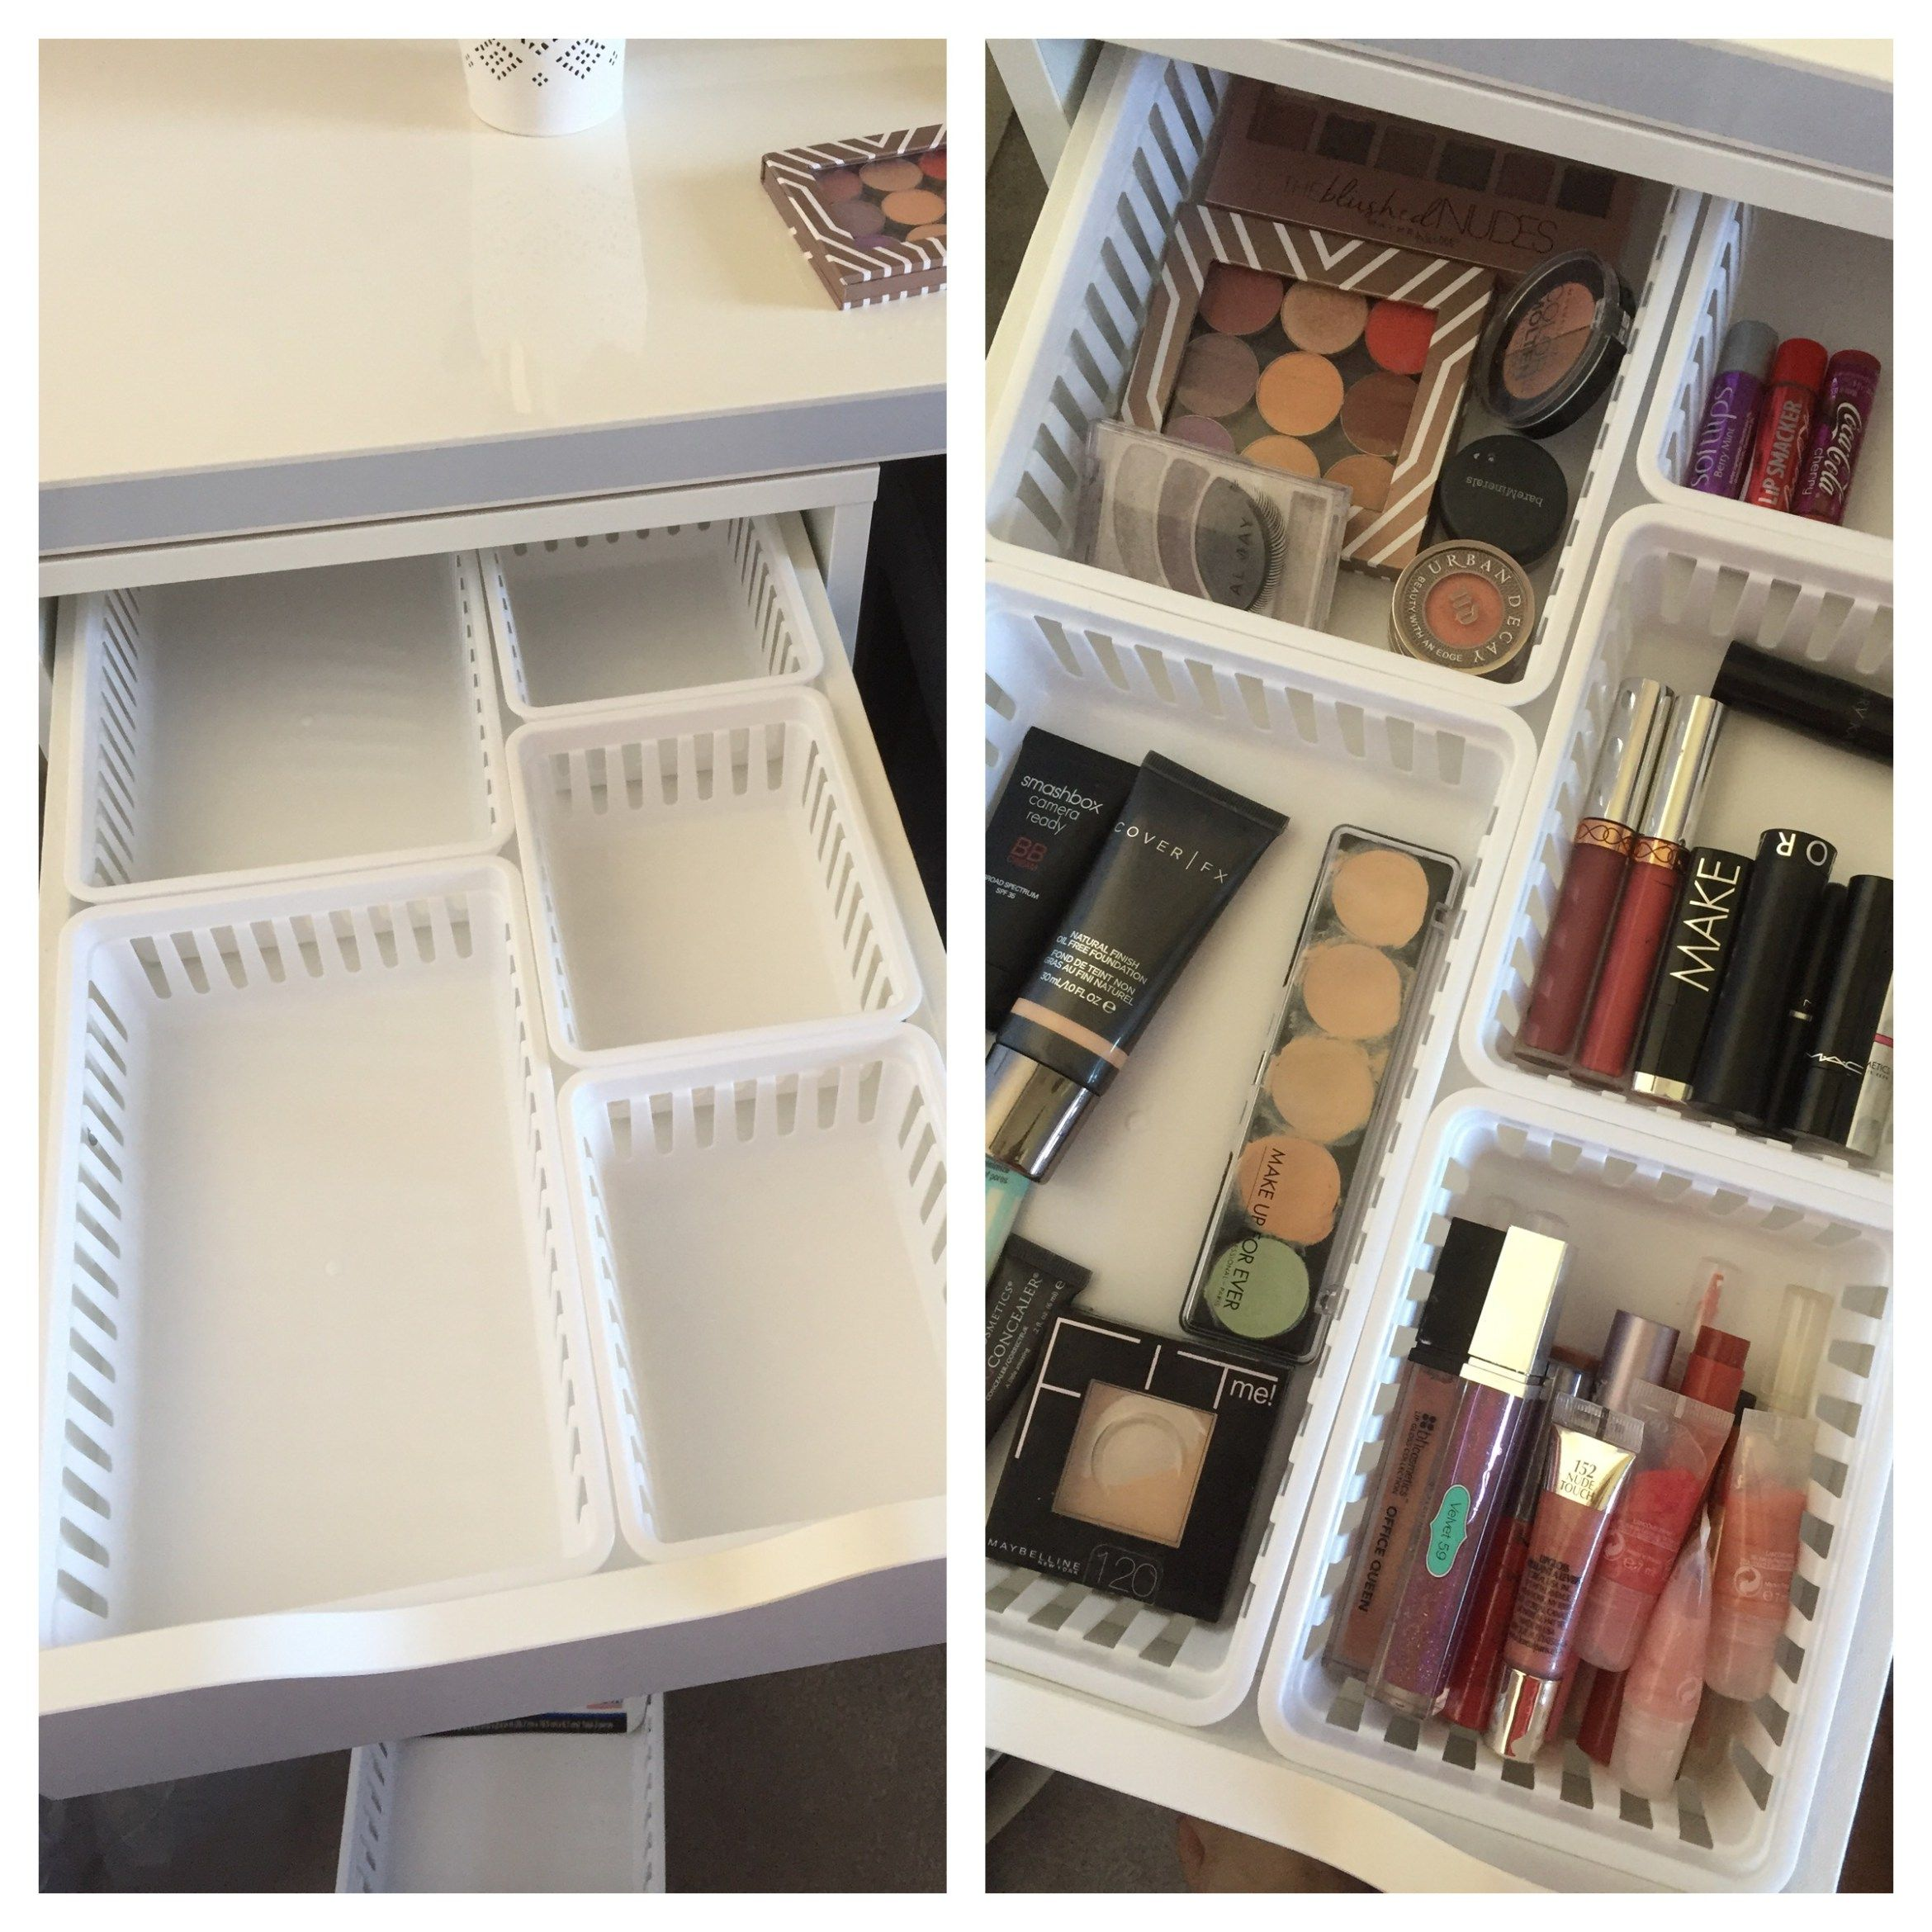 Walmart Makeup Storage Ideas For Ikea Alex Drawers Makeup Drawer Organization Ikea Alex Drawers Makeup Storage